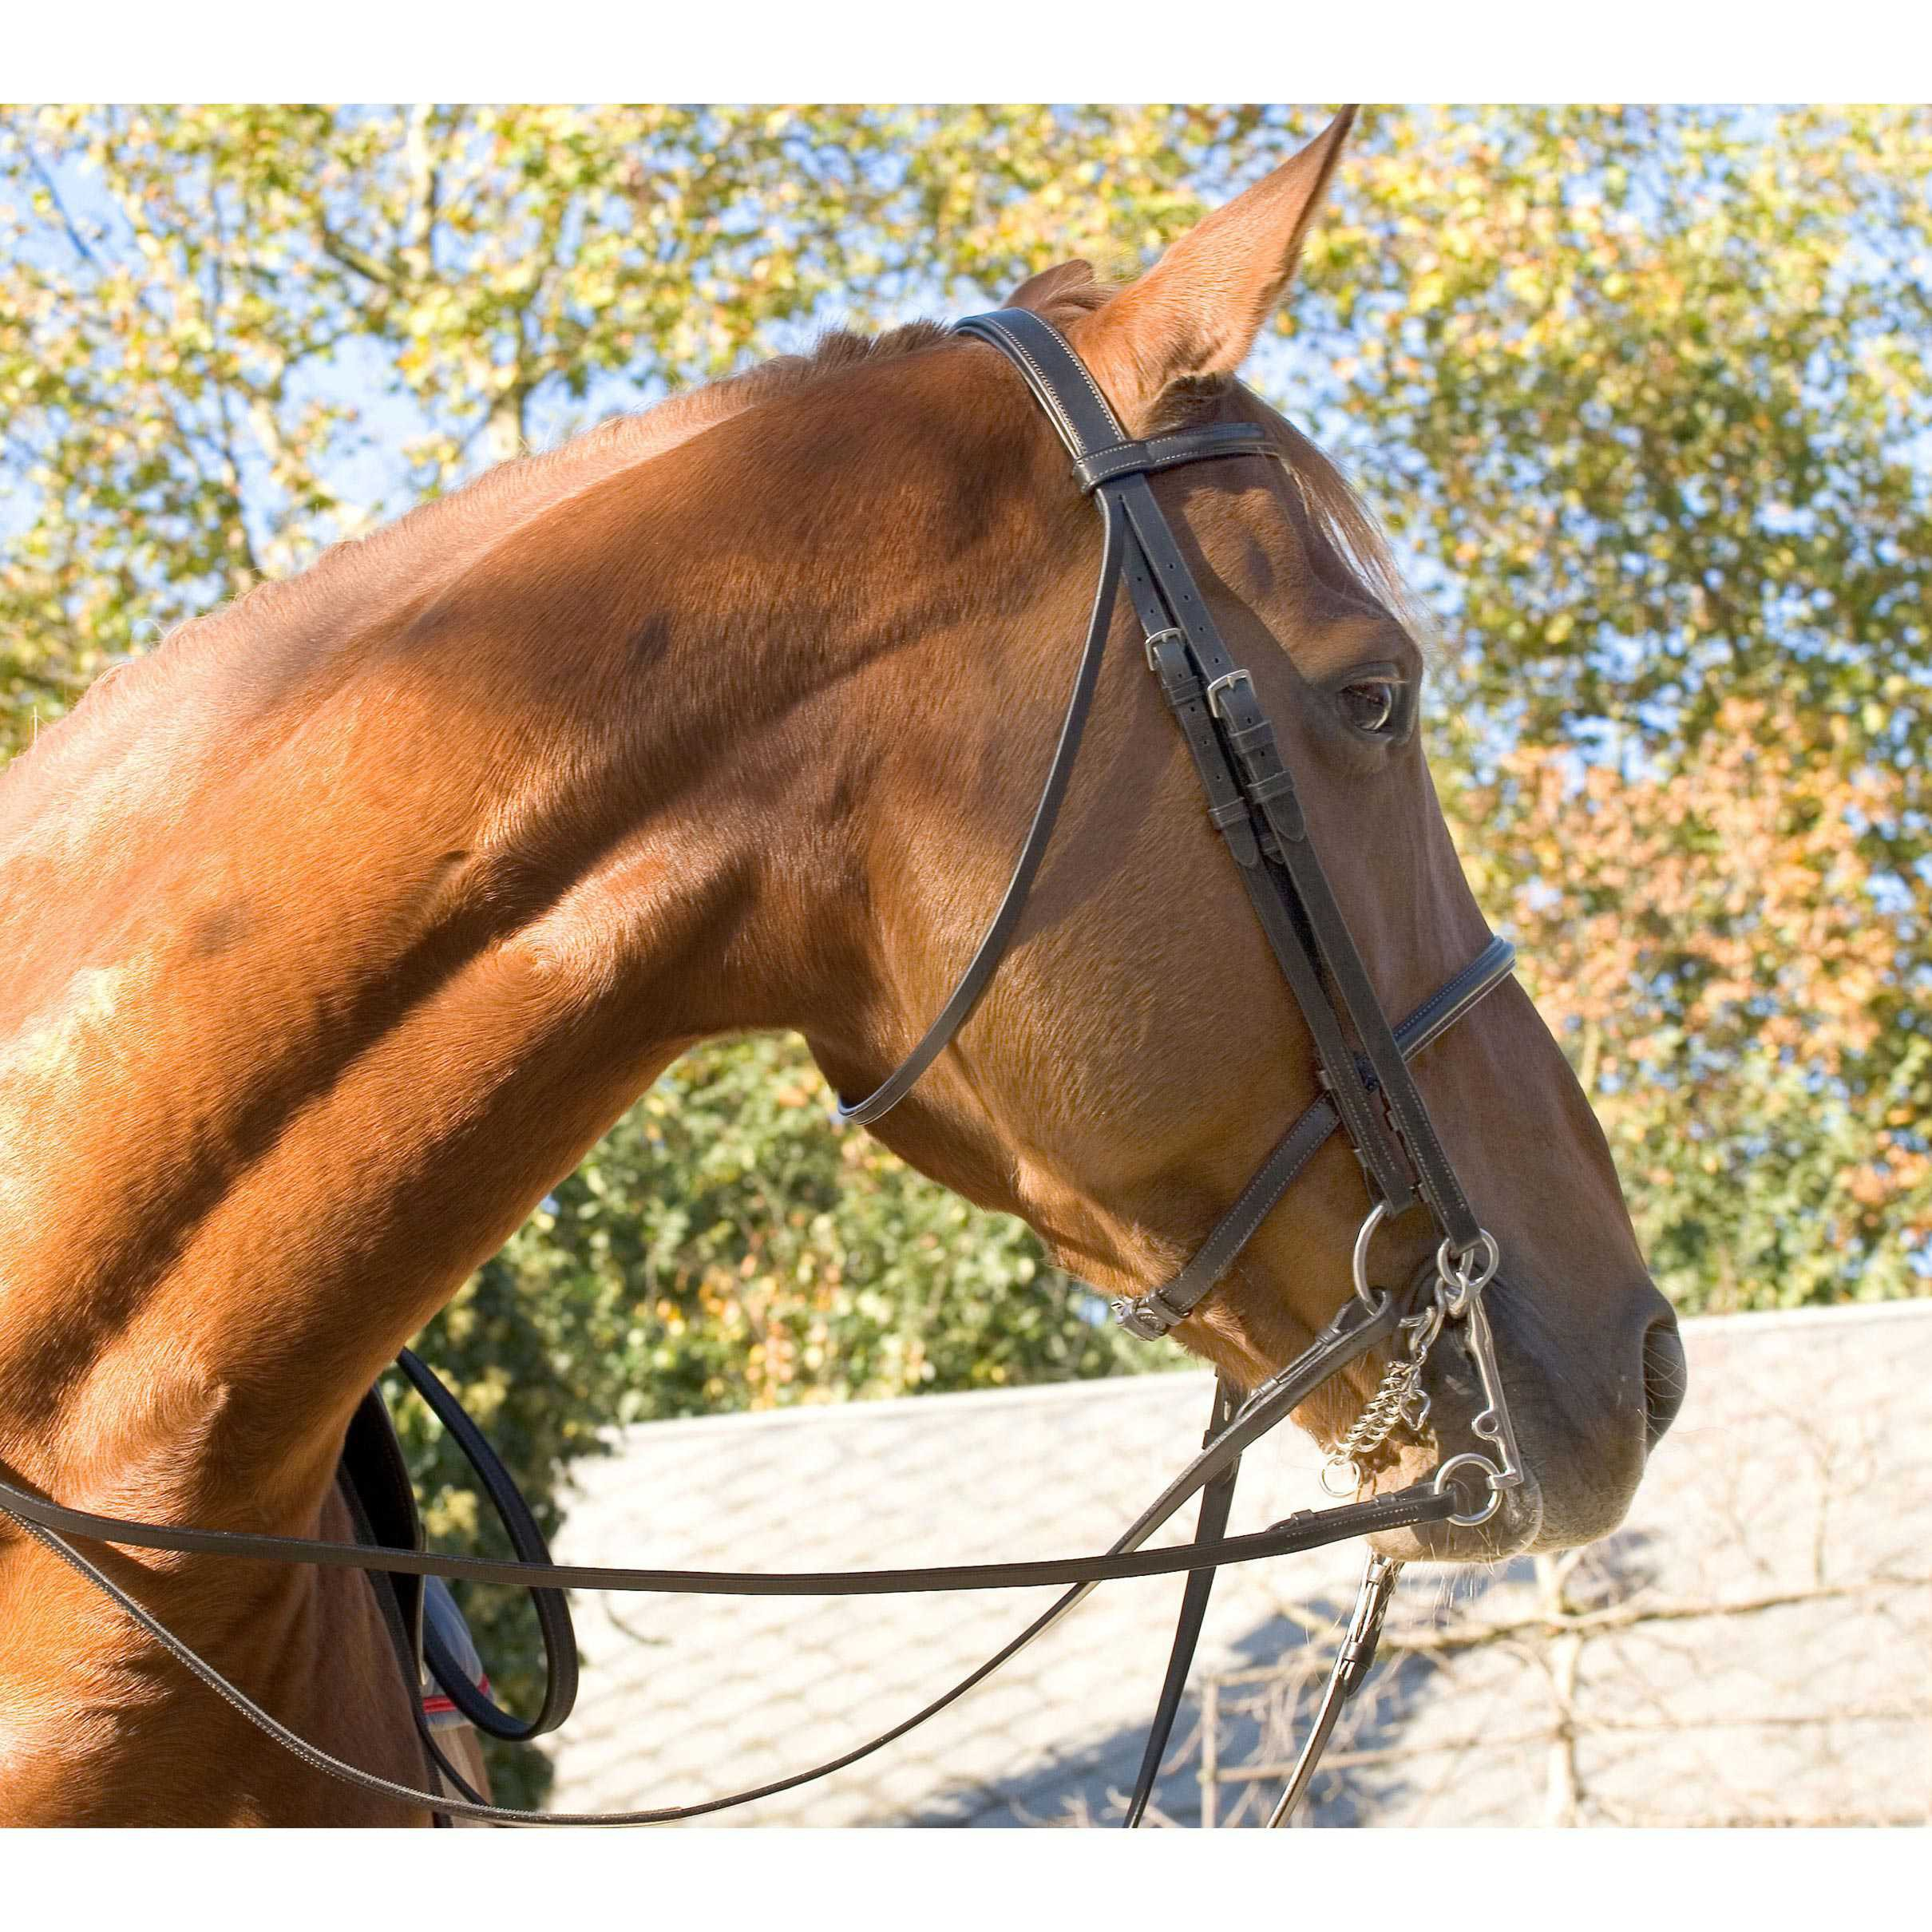 Full-leather Atherstone Double Bridle